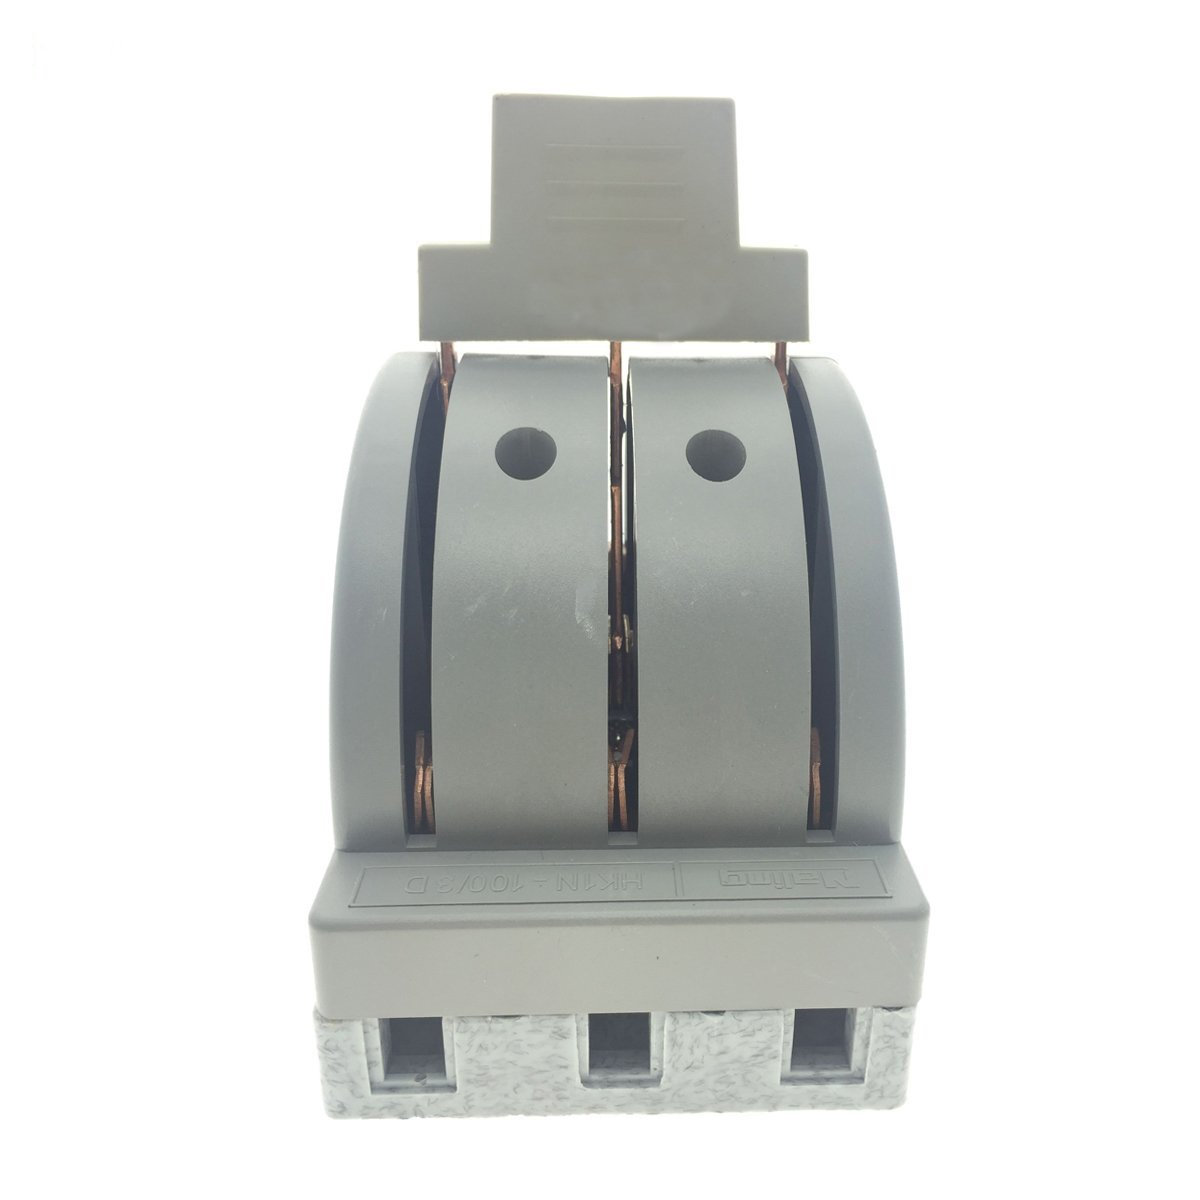 YXQ 380V 100A 3 Pole Double Throw Power Supply Safety Control Knife Switch Gray by YXQ (Image #4)